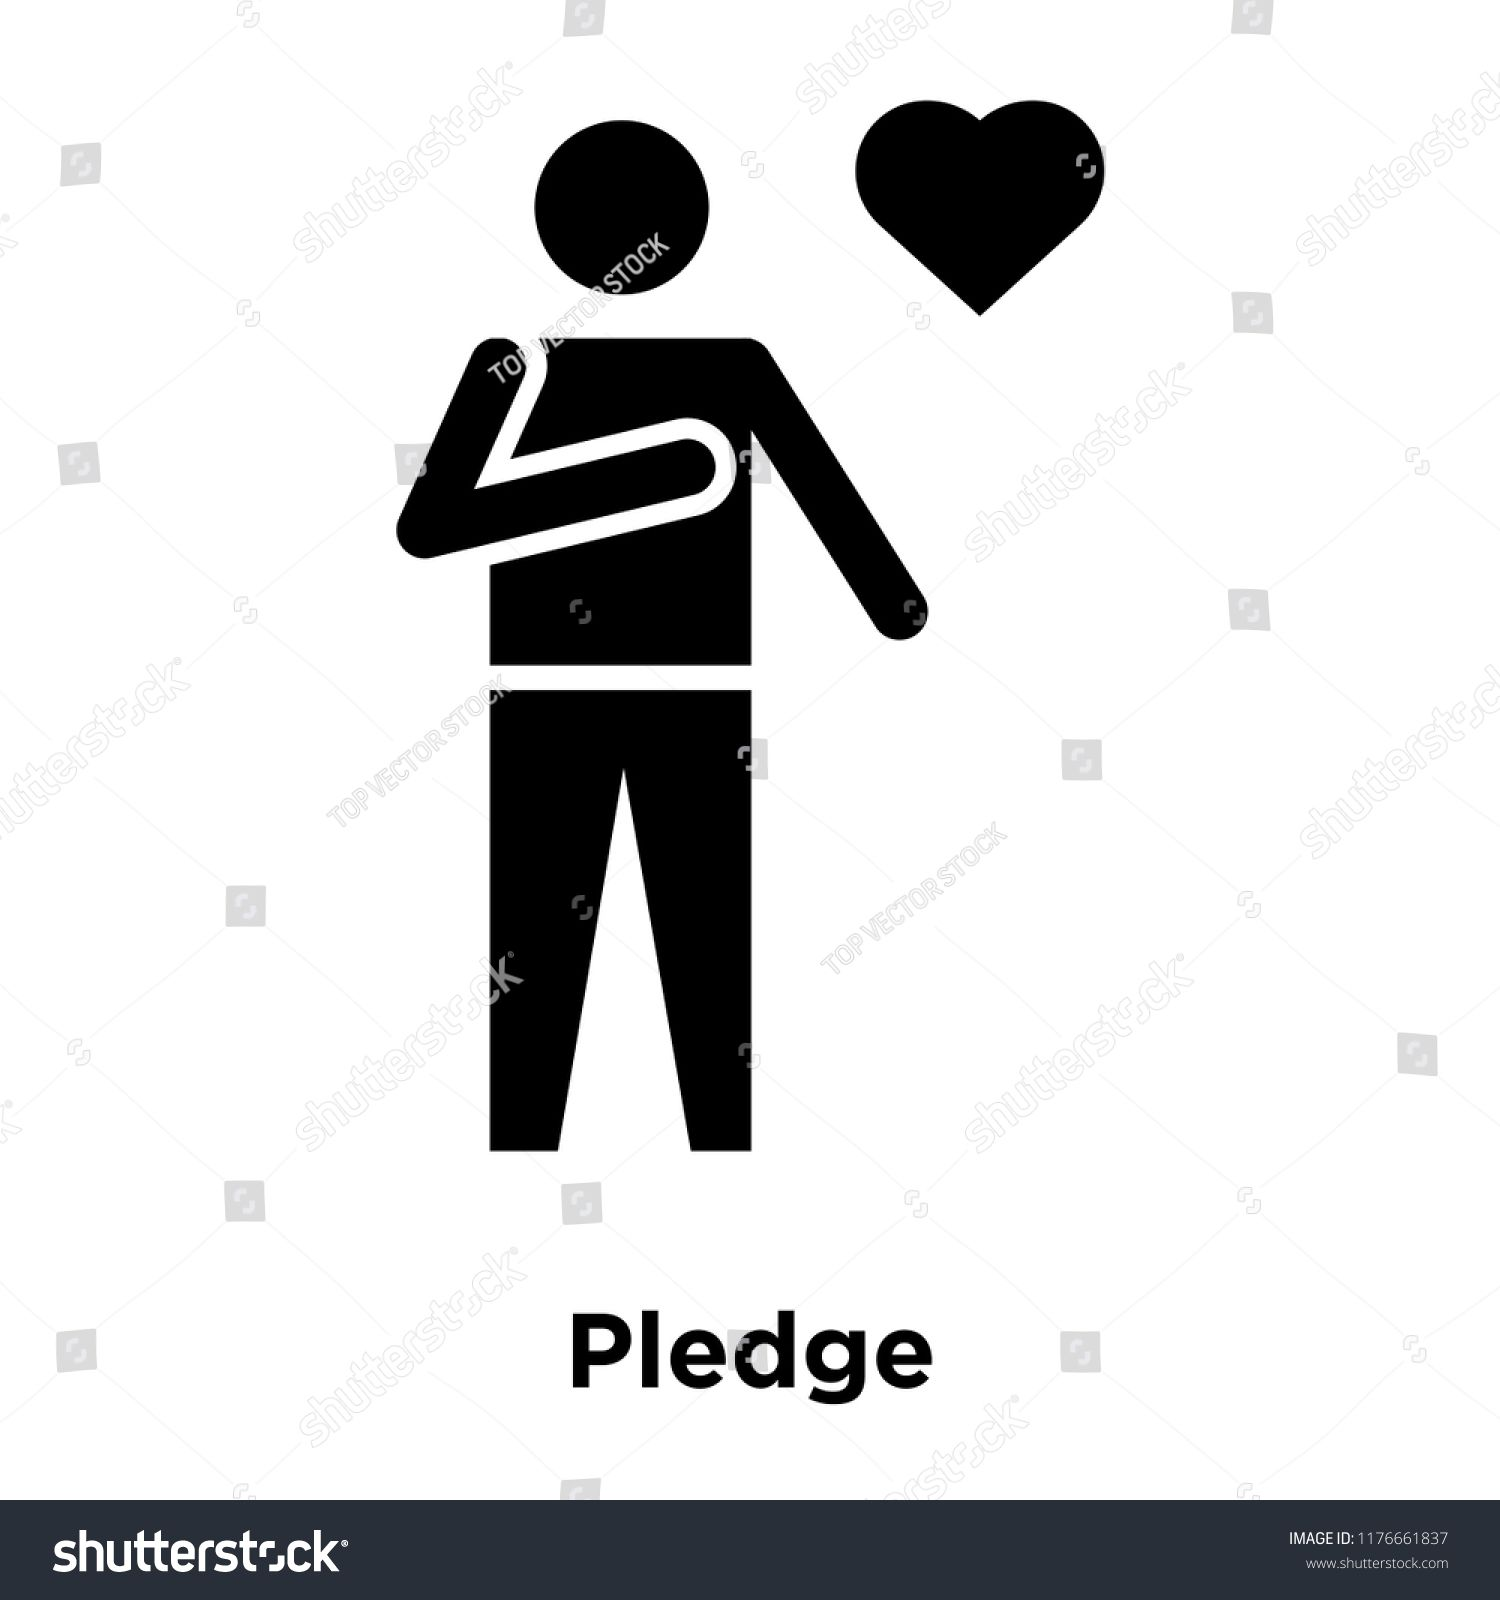 Pledge icon vector isolated on white background logo concept of 1500x1600